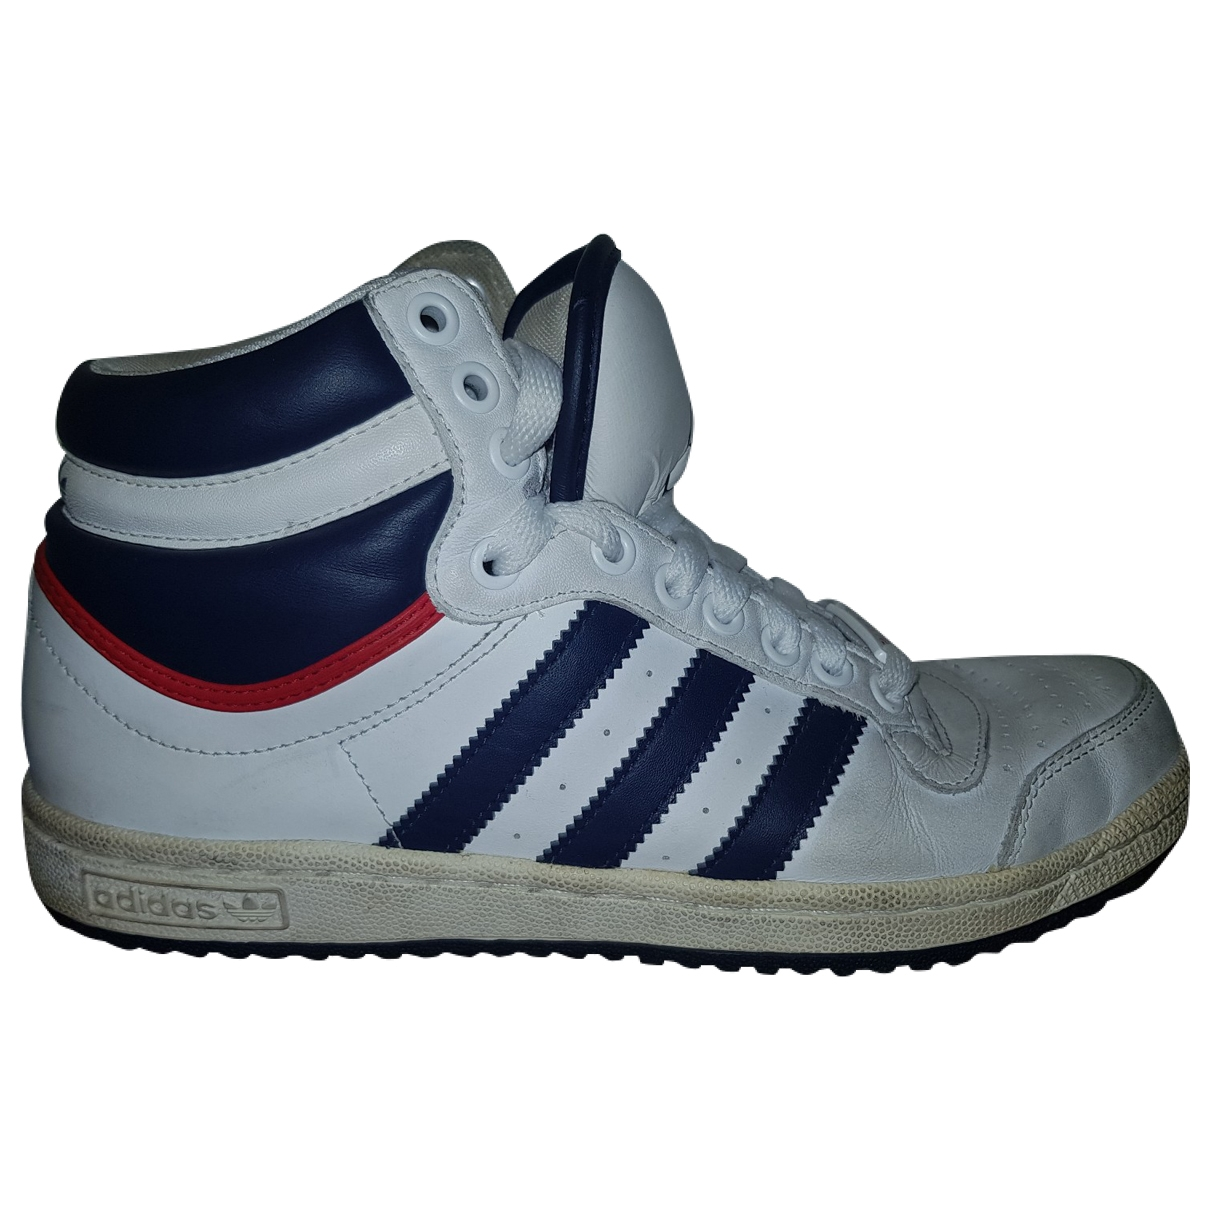 Adidas \N White Leather Trainers for Women 7 US